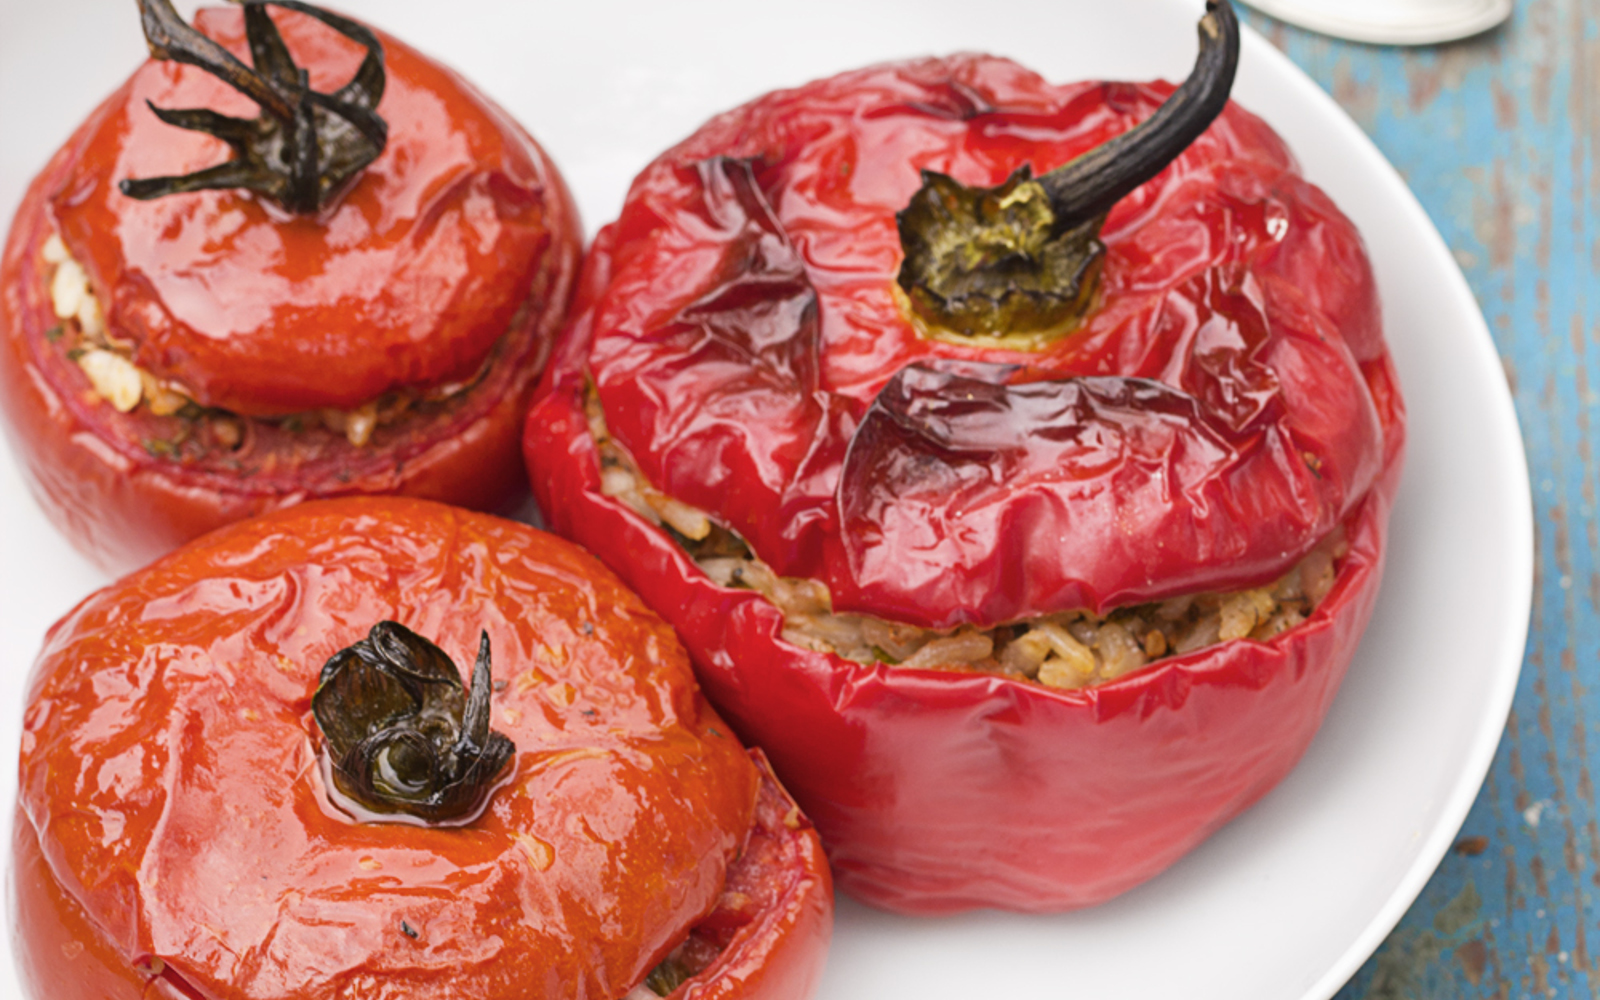 Risotto and Herb Stuffed Peppers and Tomatoes [Vegan, Gluten-Free]